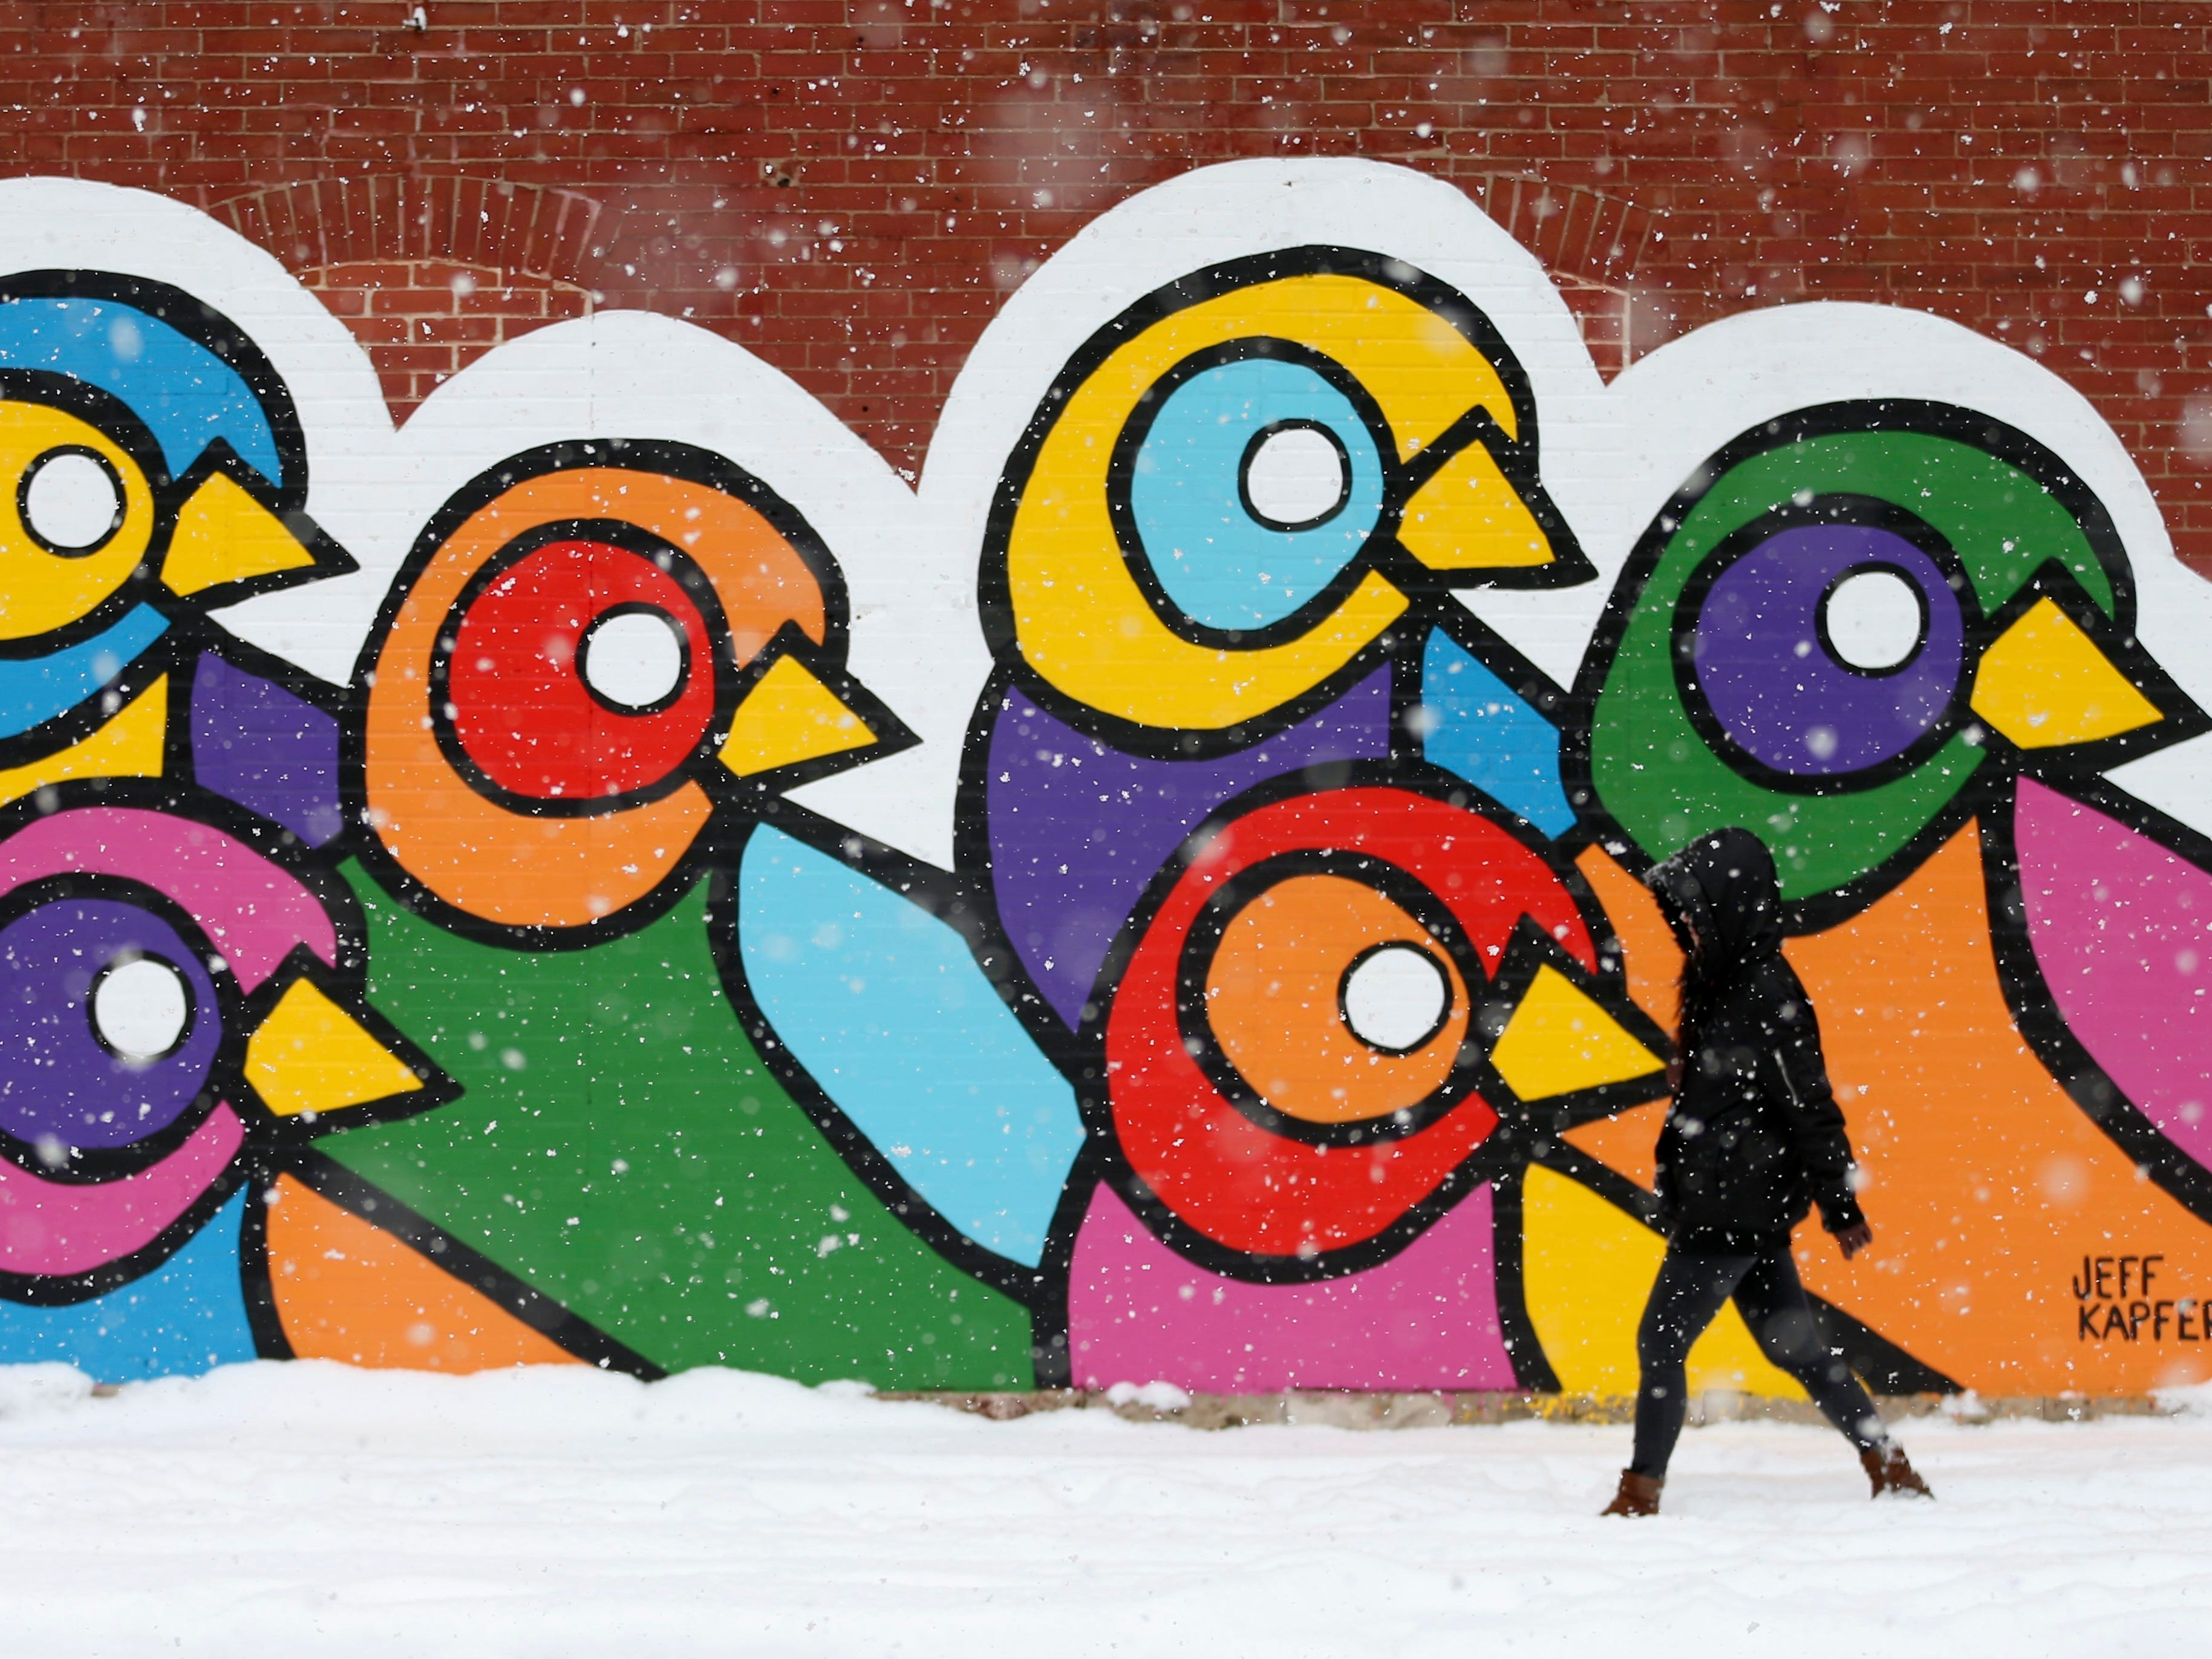 """""""The snow is just beautiful, """" said Xioqing Qin, who walks to work in the snow passing a mural painted on the exterior wall of the Atomic Cowboy bar and restaurant on Thursday, Nov. 15, 2018, in St. Louis."""